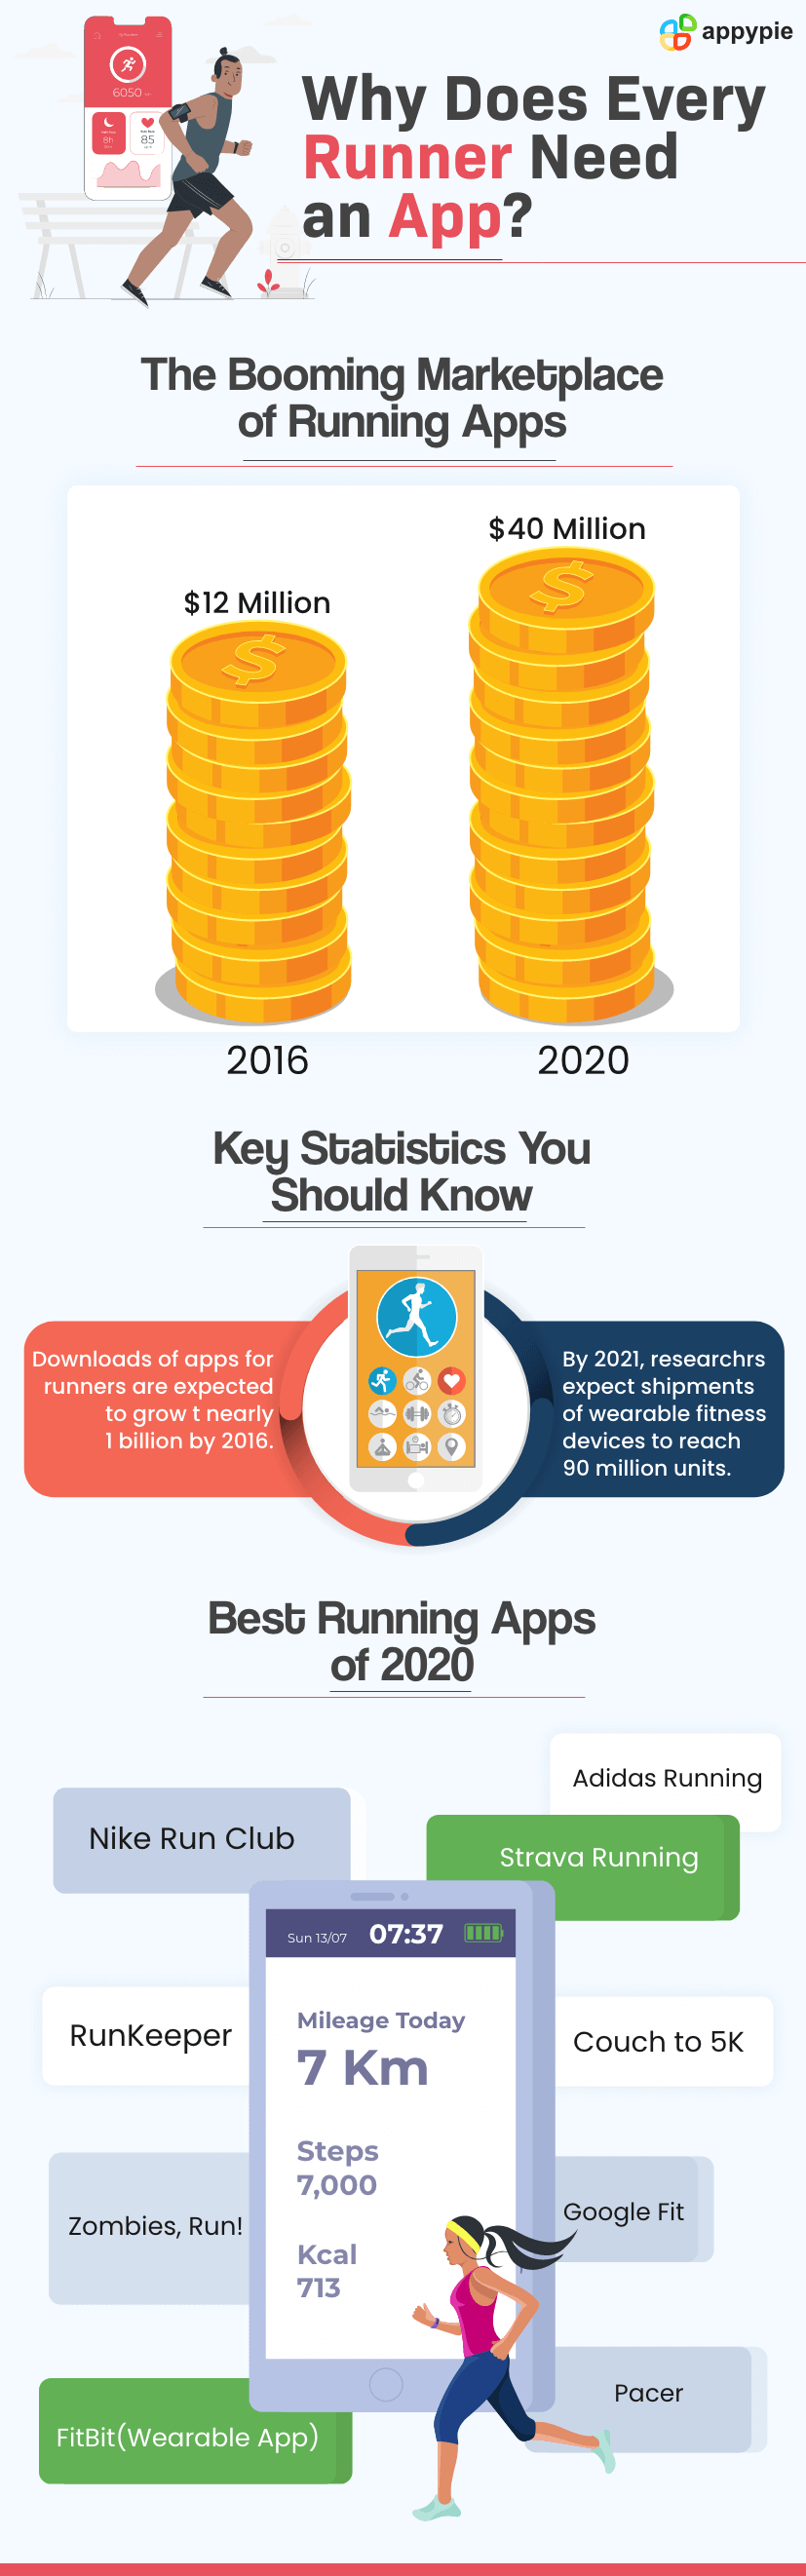 Why Does Every Runner Needan App - Appy Pie